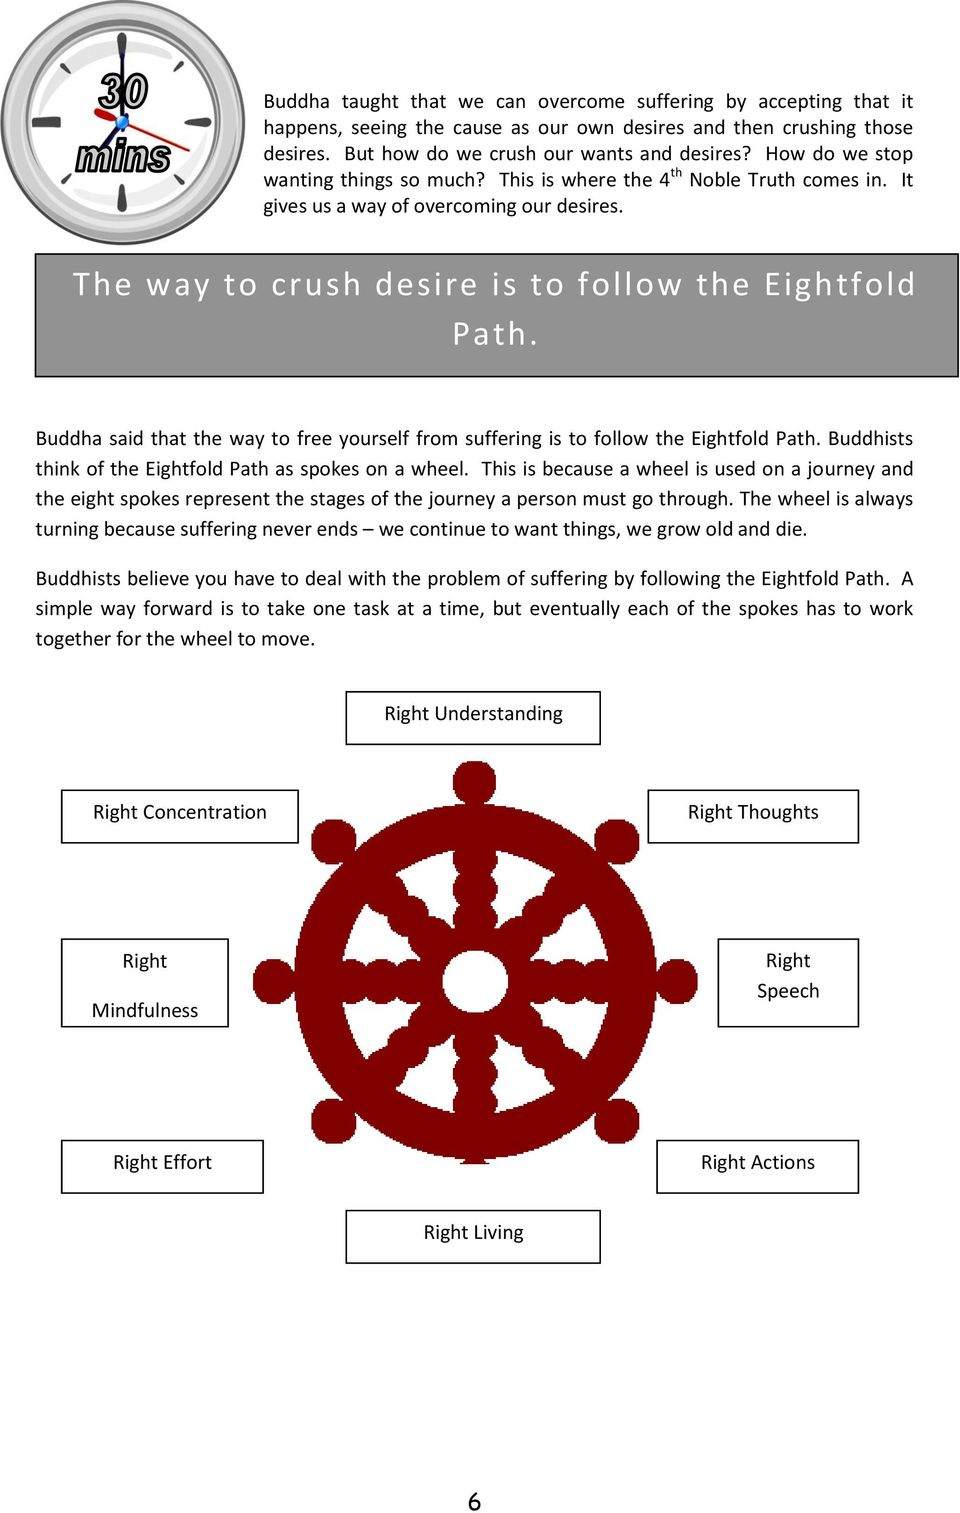 Buddha said that the way to free yourself from suffering is to follow the Eightfold Path. Buddhists think of the Eightfold Path as spokes on a wheel.